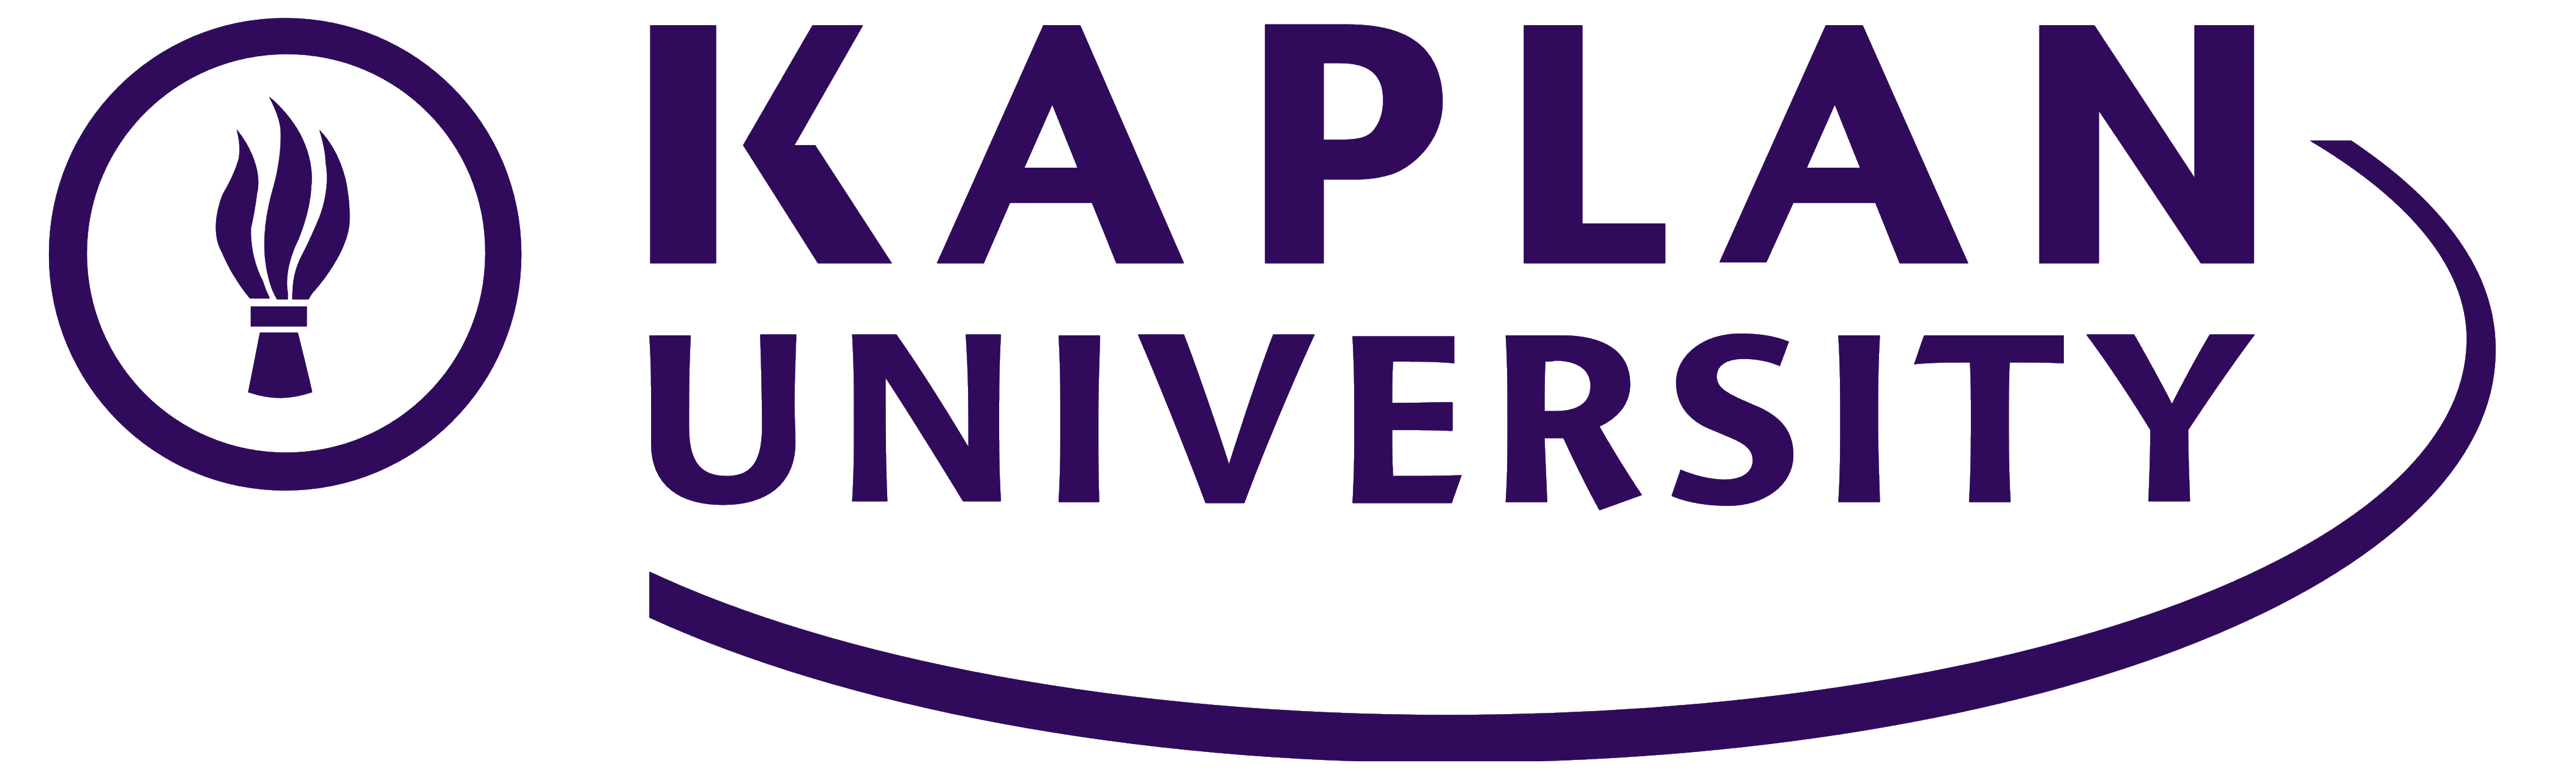 Kaplan_University_logo_logotype